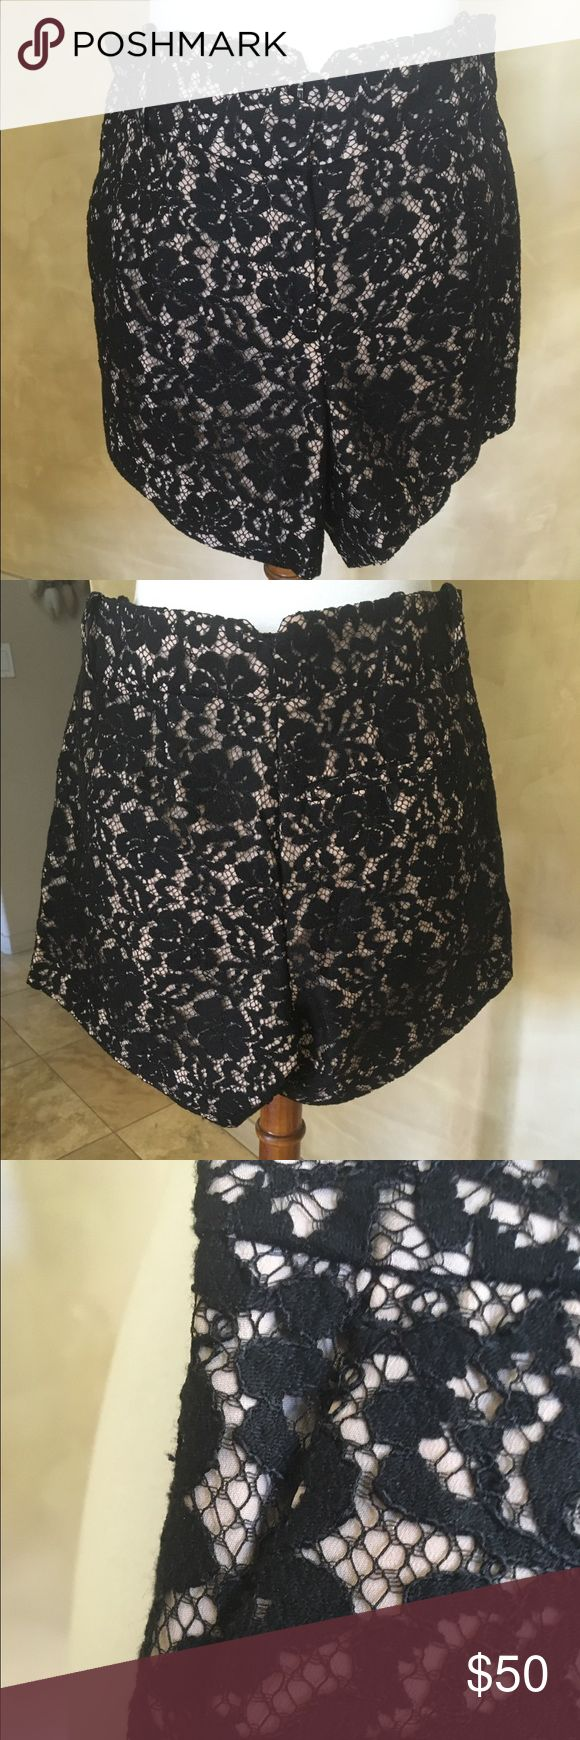 Black lace over nude shorts Beautiful black lace over nude shorts side pockets New no tags inseam 4.5 inches BCBGMaxAzria Shorts Bermudas